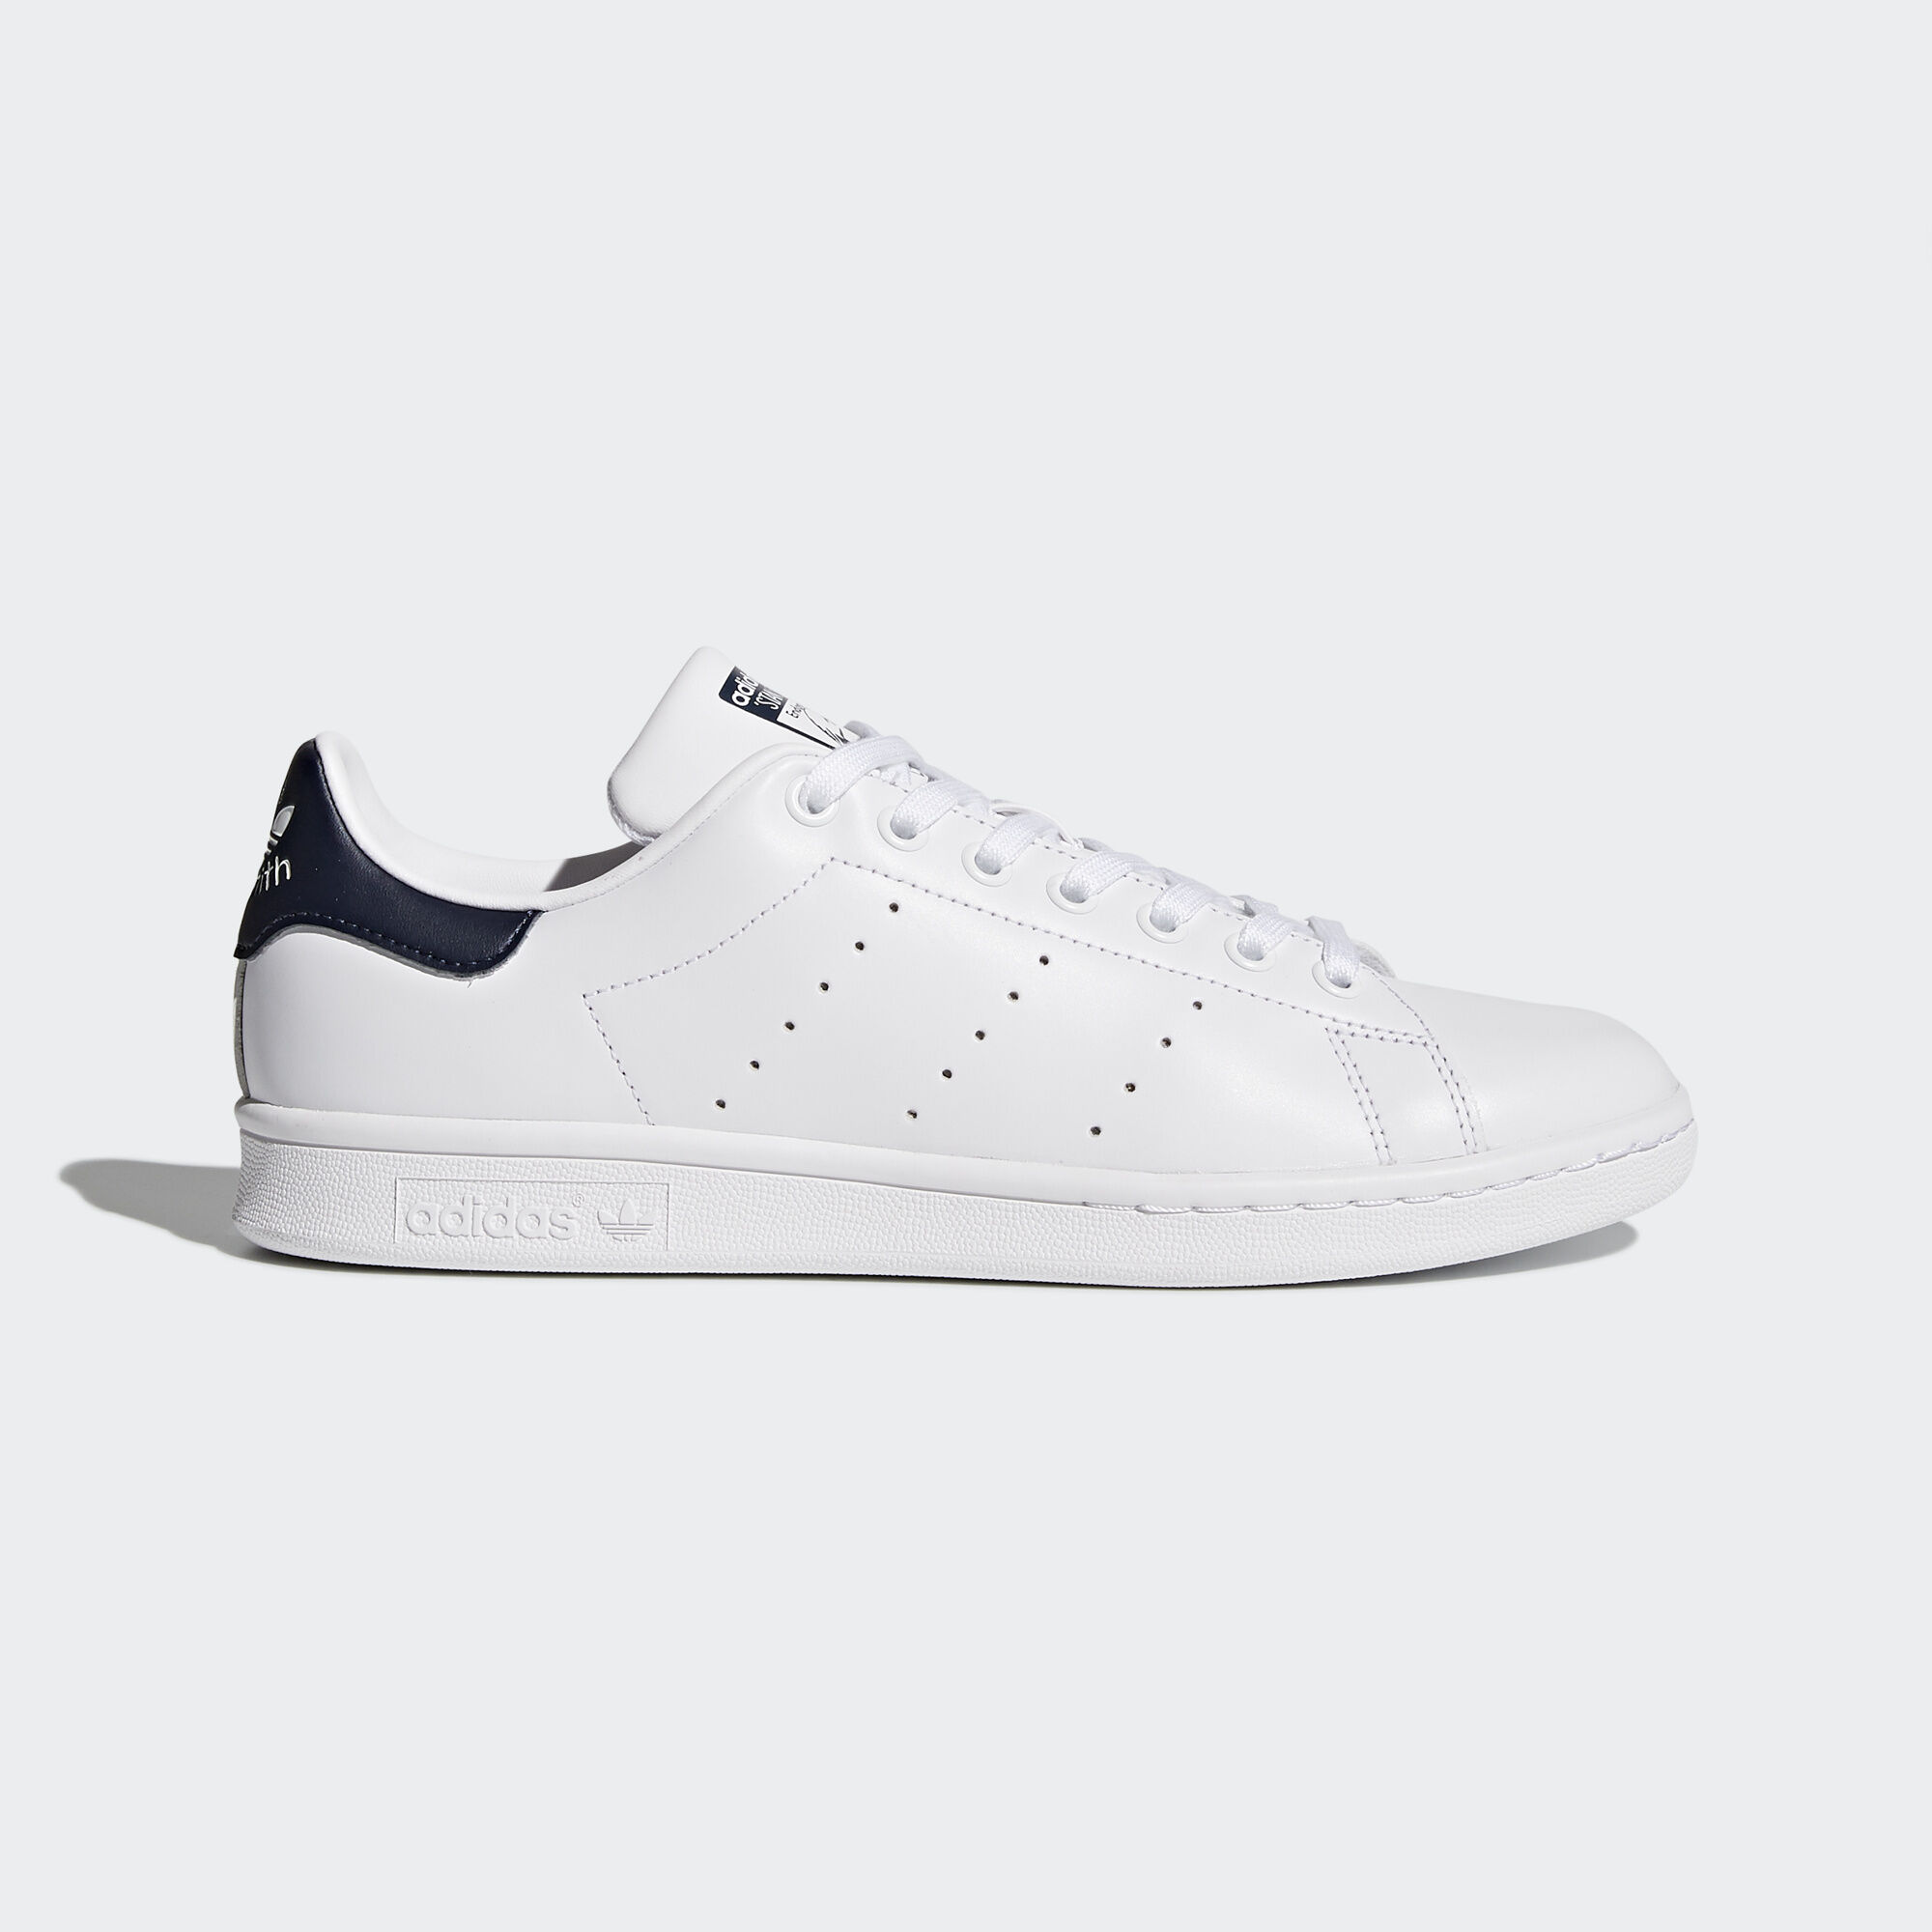 Stan Smith Adidas Uscita